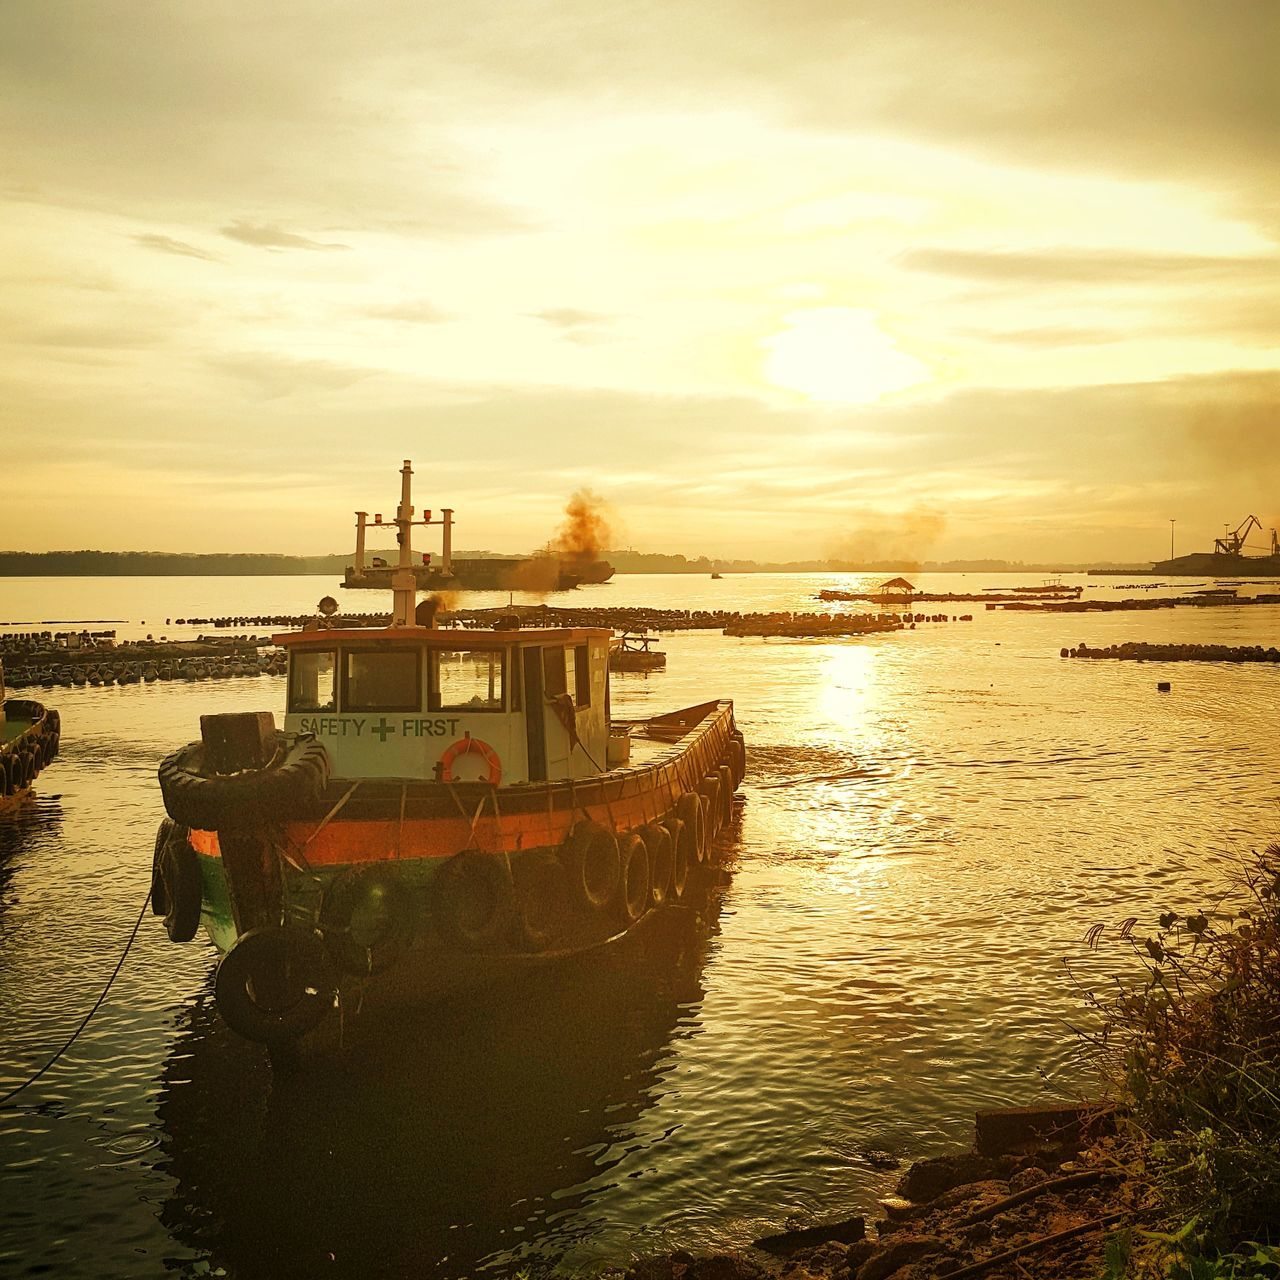 Adapted To The City Yellow Sea Water Sunset Travel Destinations Sky Harbor 日落 Beauty In Nature Cloud - Sky Outdoors No People Transportation 岸边 Scenics Day Johor Bahru Boat